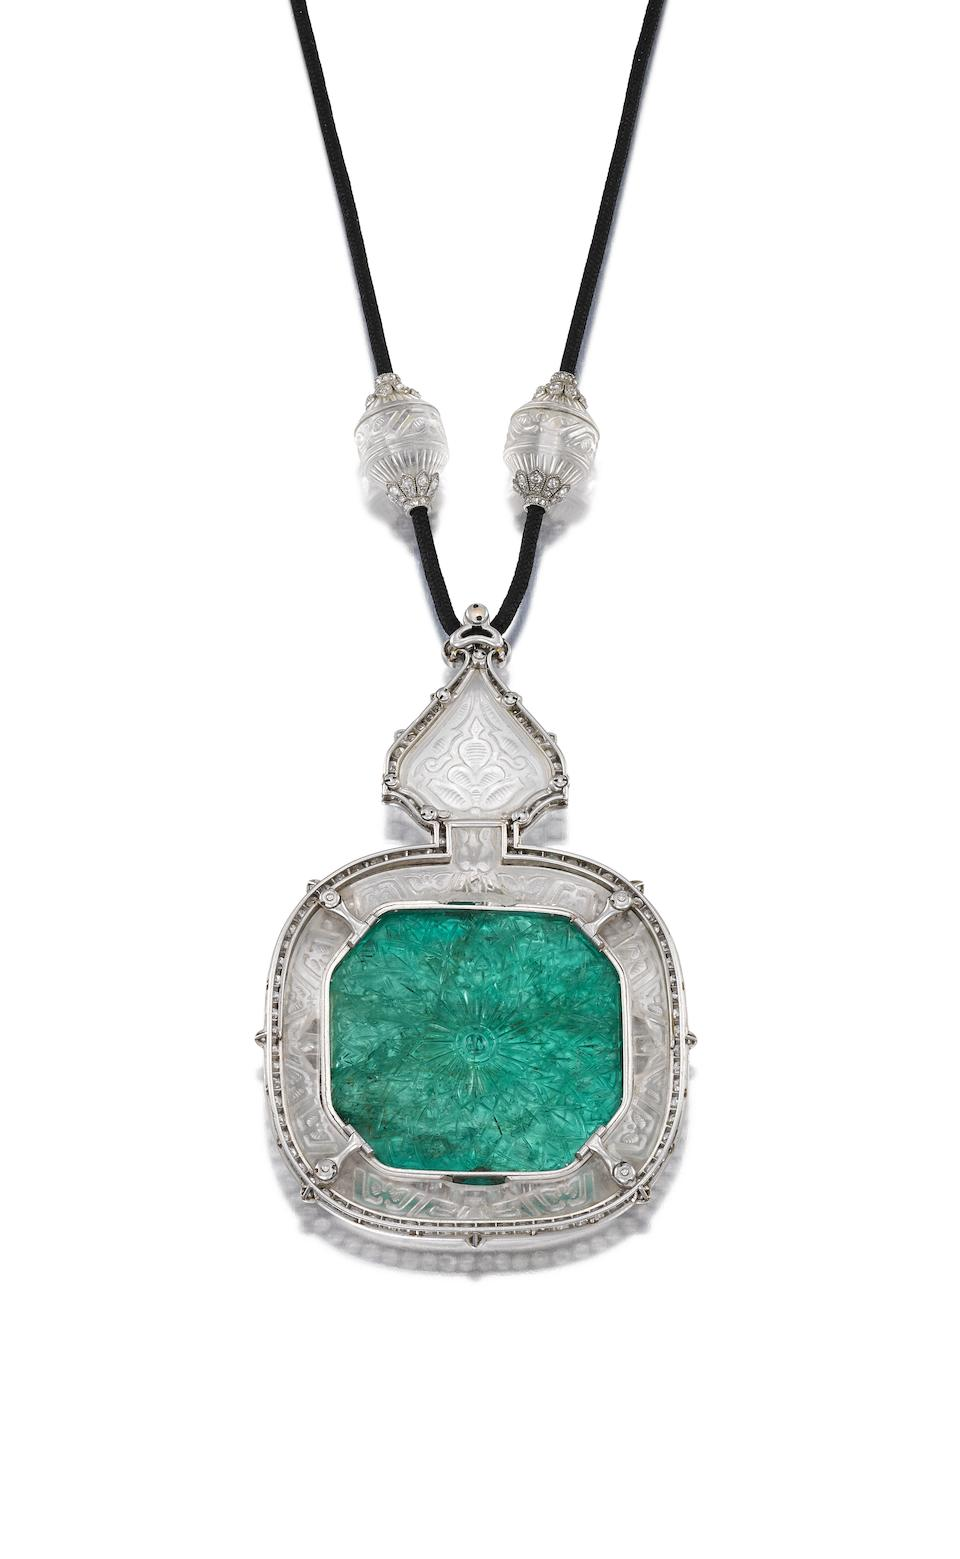 Art deco carved emerald, rock crystal and diamond pendant, possibly by Cartier